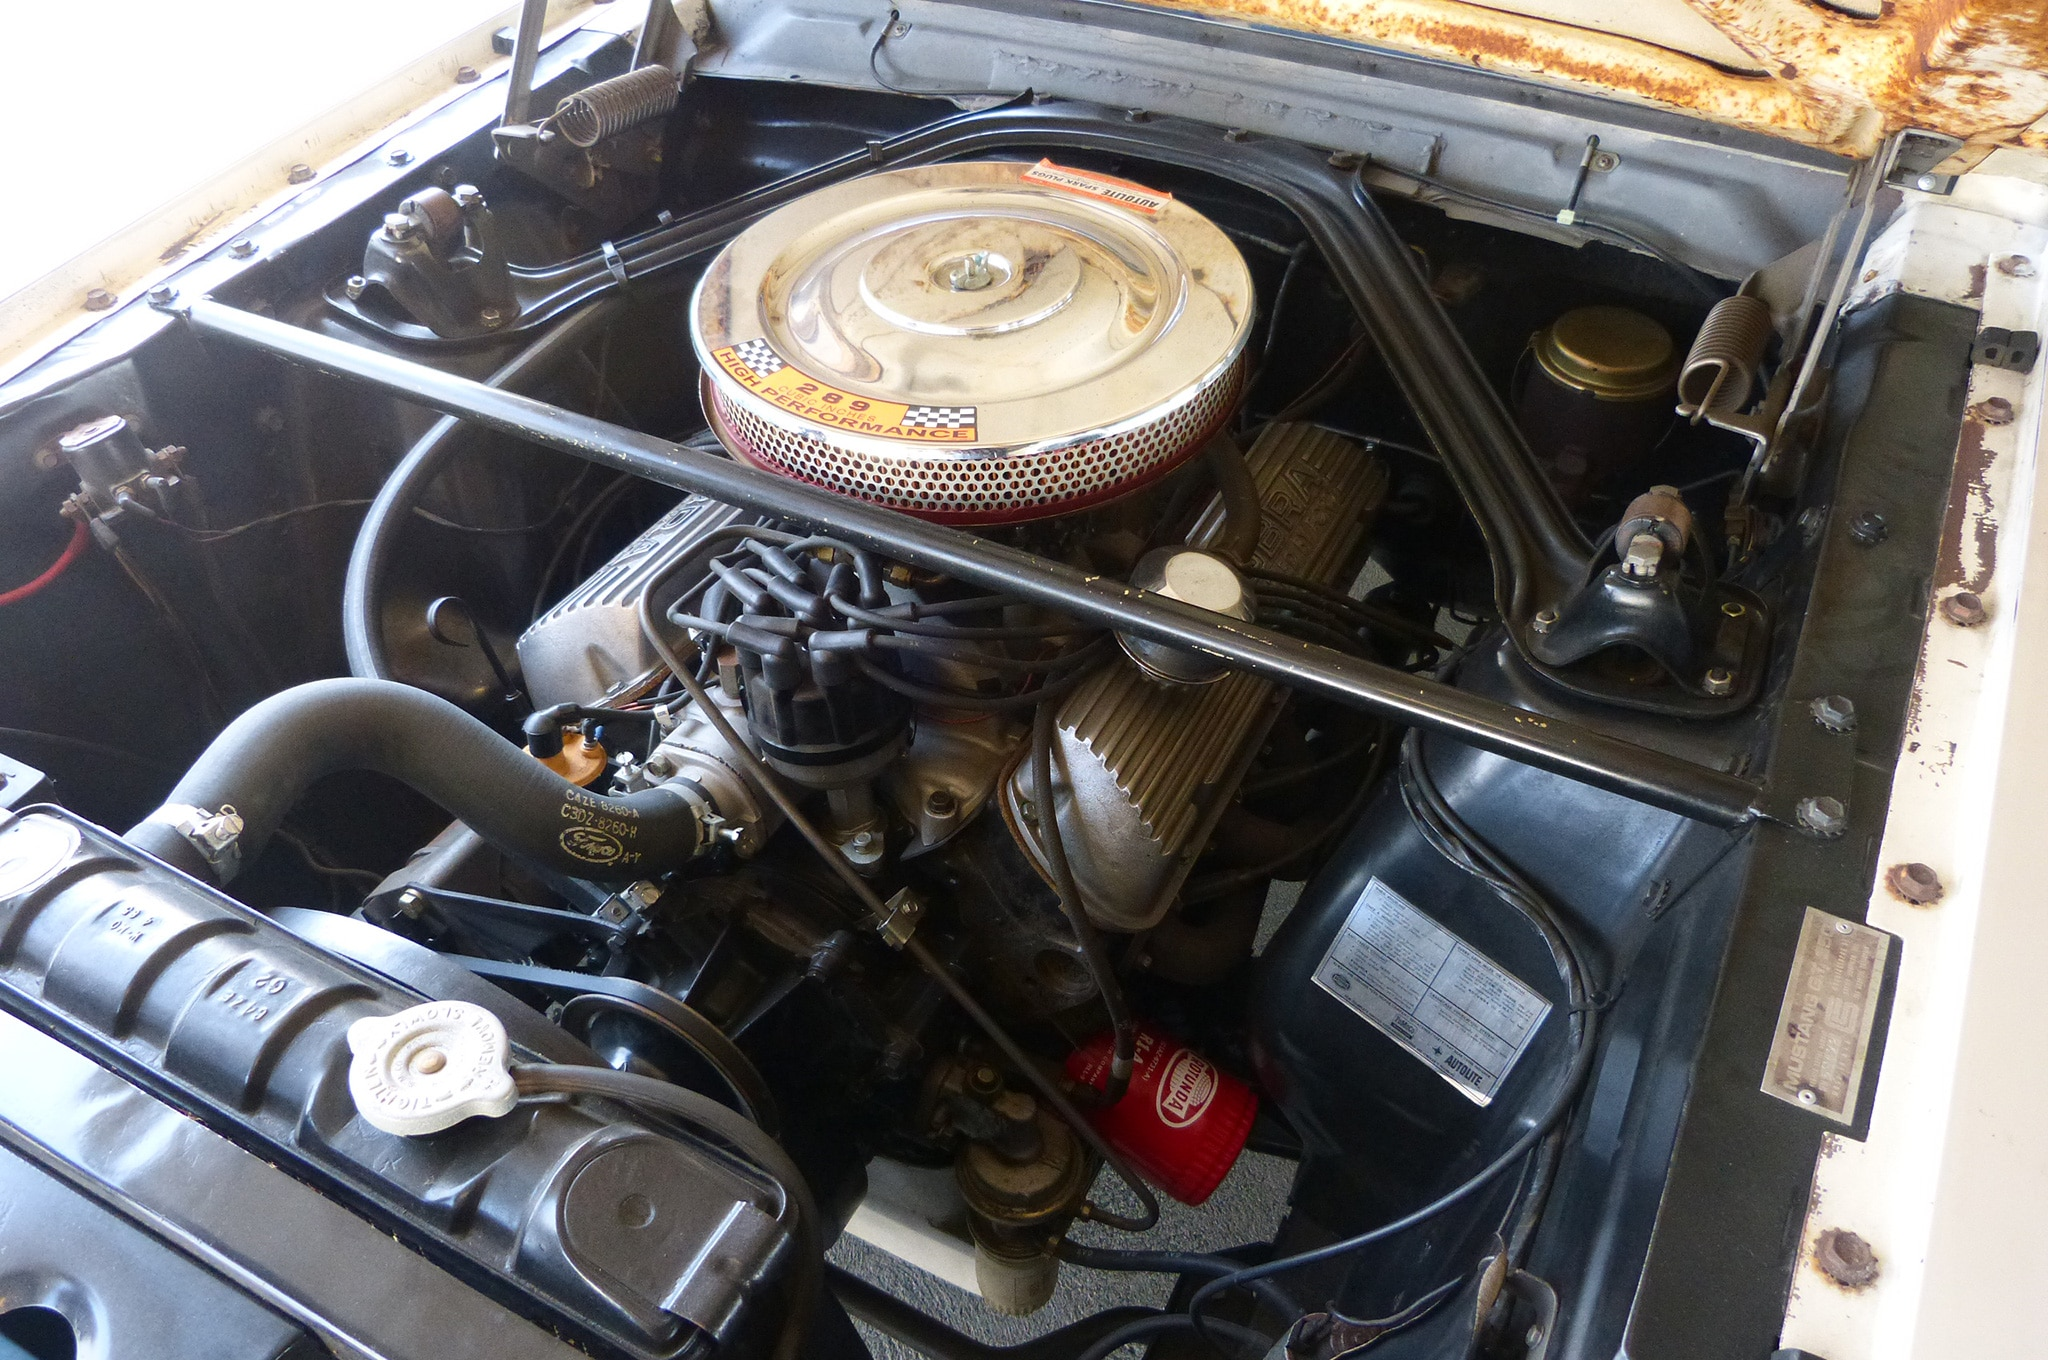 06 1965 Ford Mustang Shelby Gt350 Engine